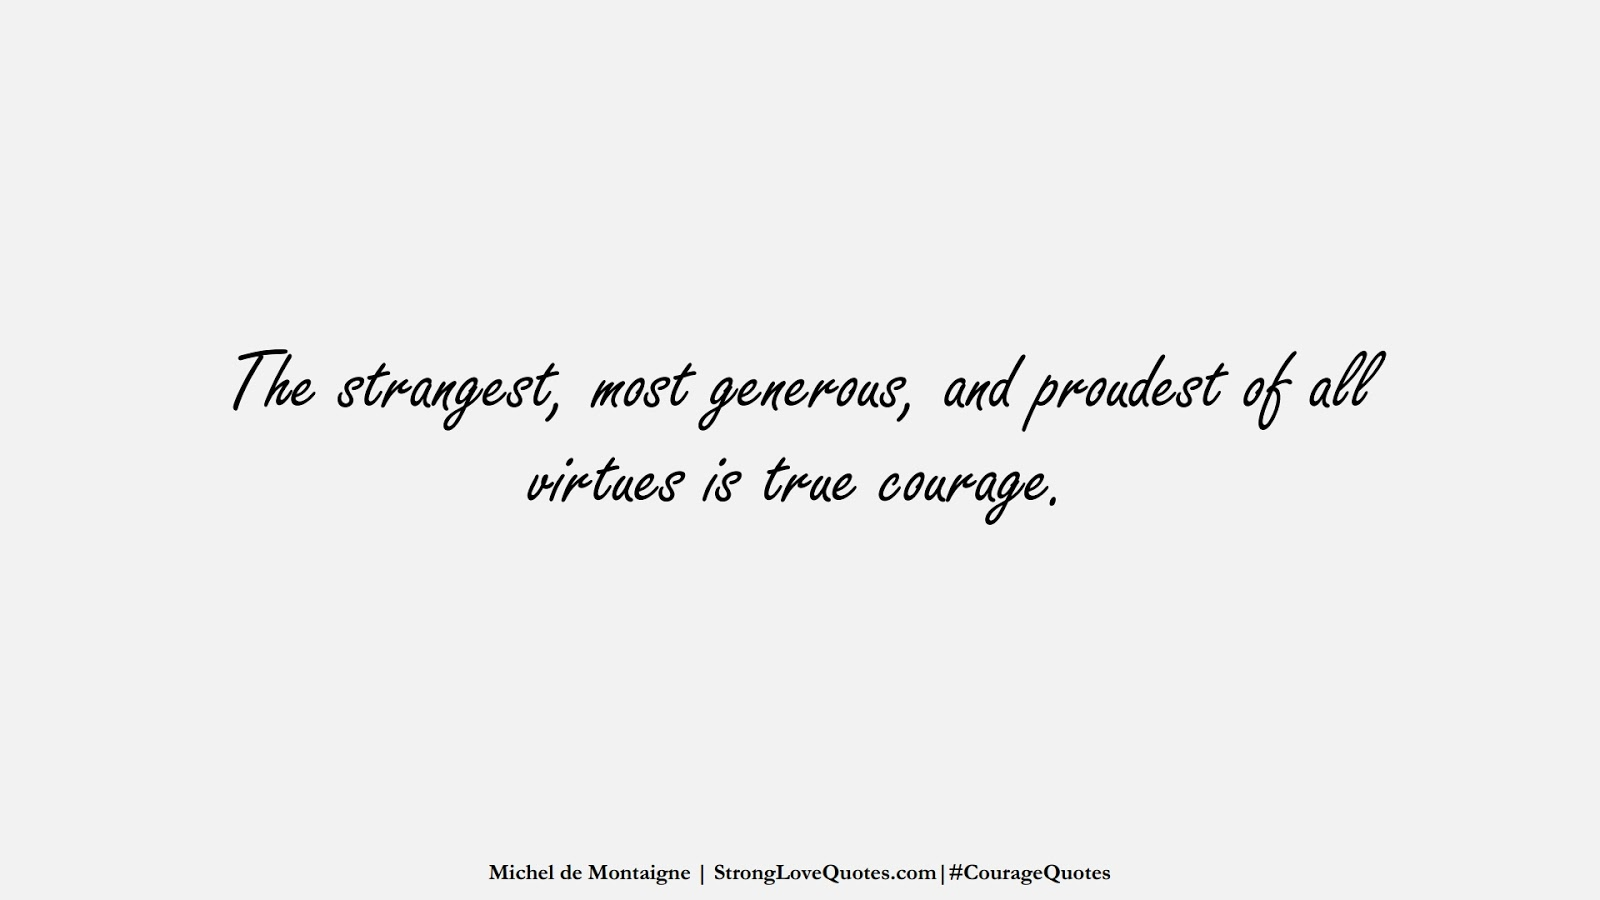 The strangest, most generous, and proudest of all virtues is true courage. (Michel de Montaigne);  #CourageQuotes